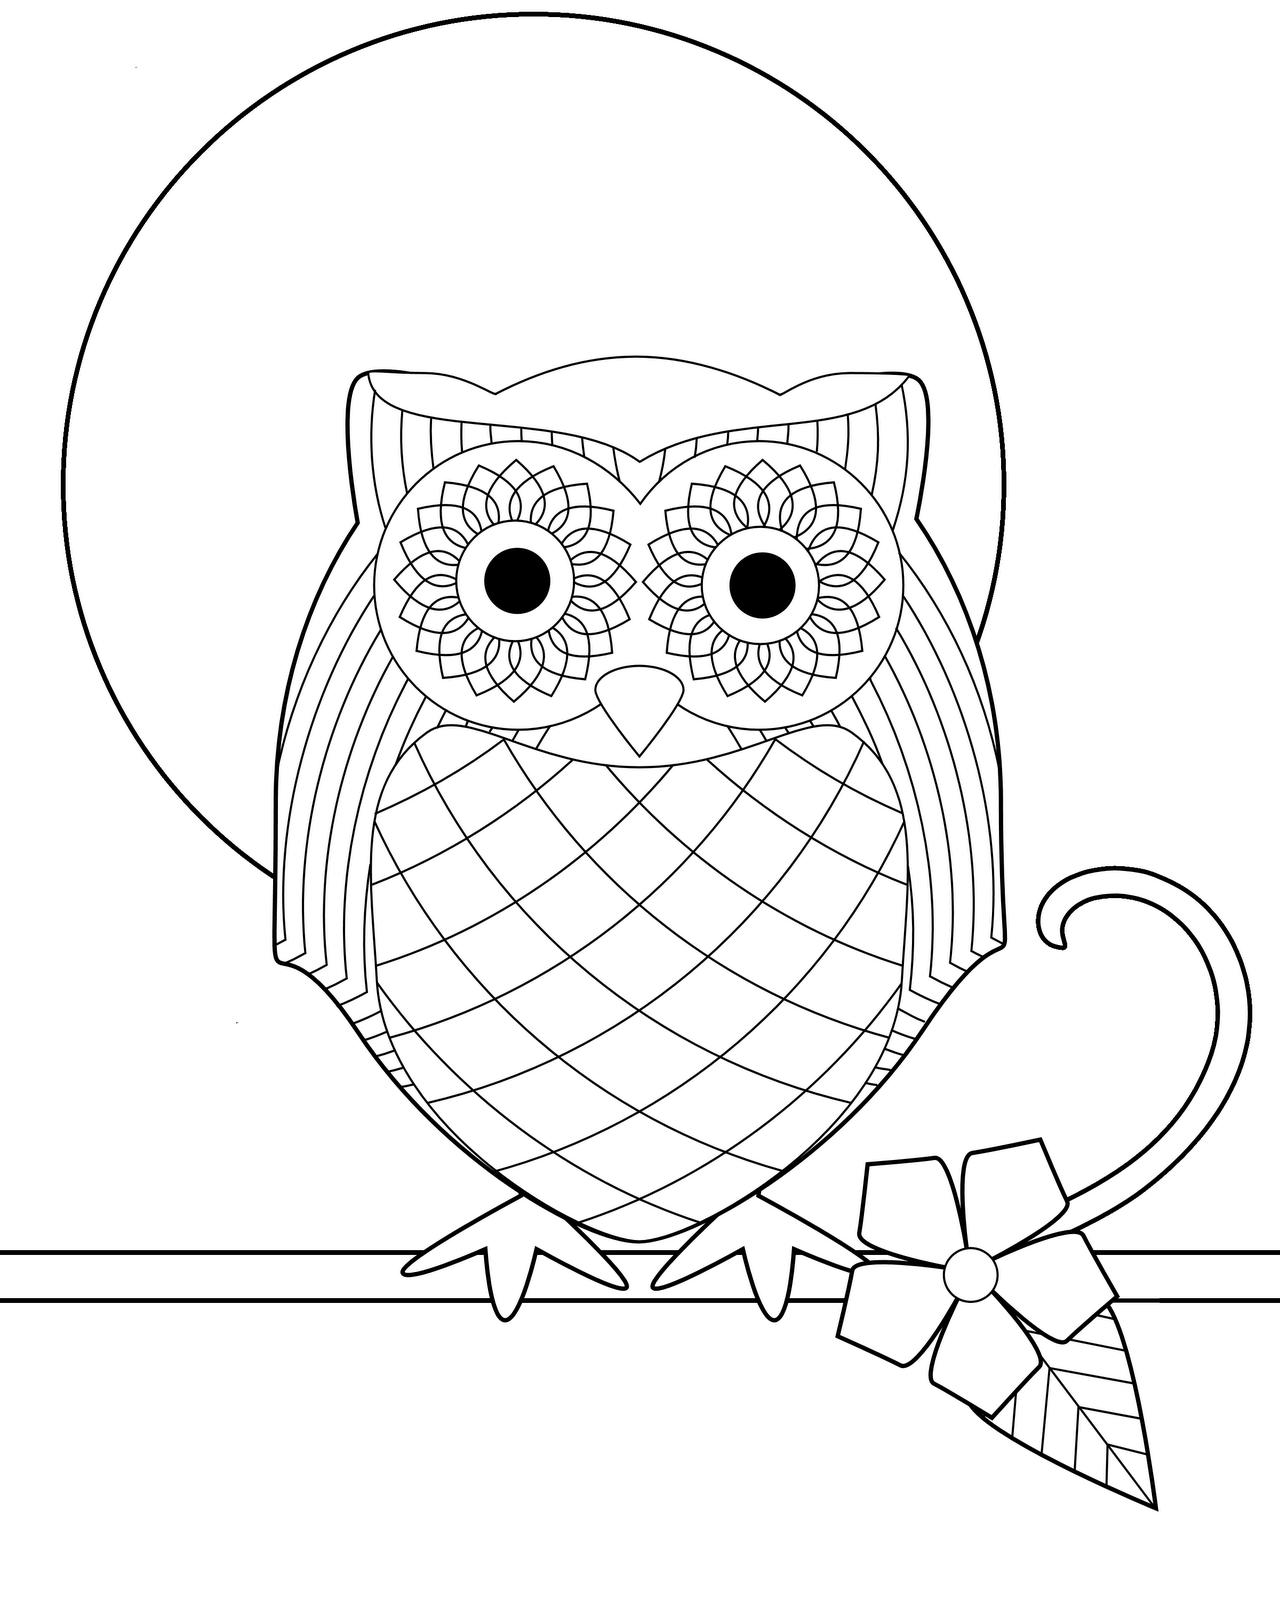 Mosaic coloring pages free printable - Owl Coloring Pictures For Free Printable Coloring Pages Sheets For Kids Get The Latest Free Owl Coloring Pictures For Free Images Favorite Coloring Pages